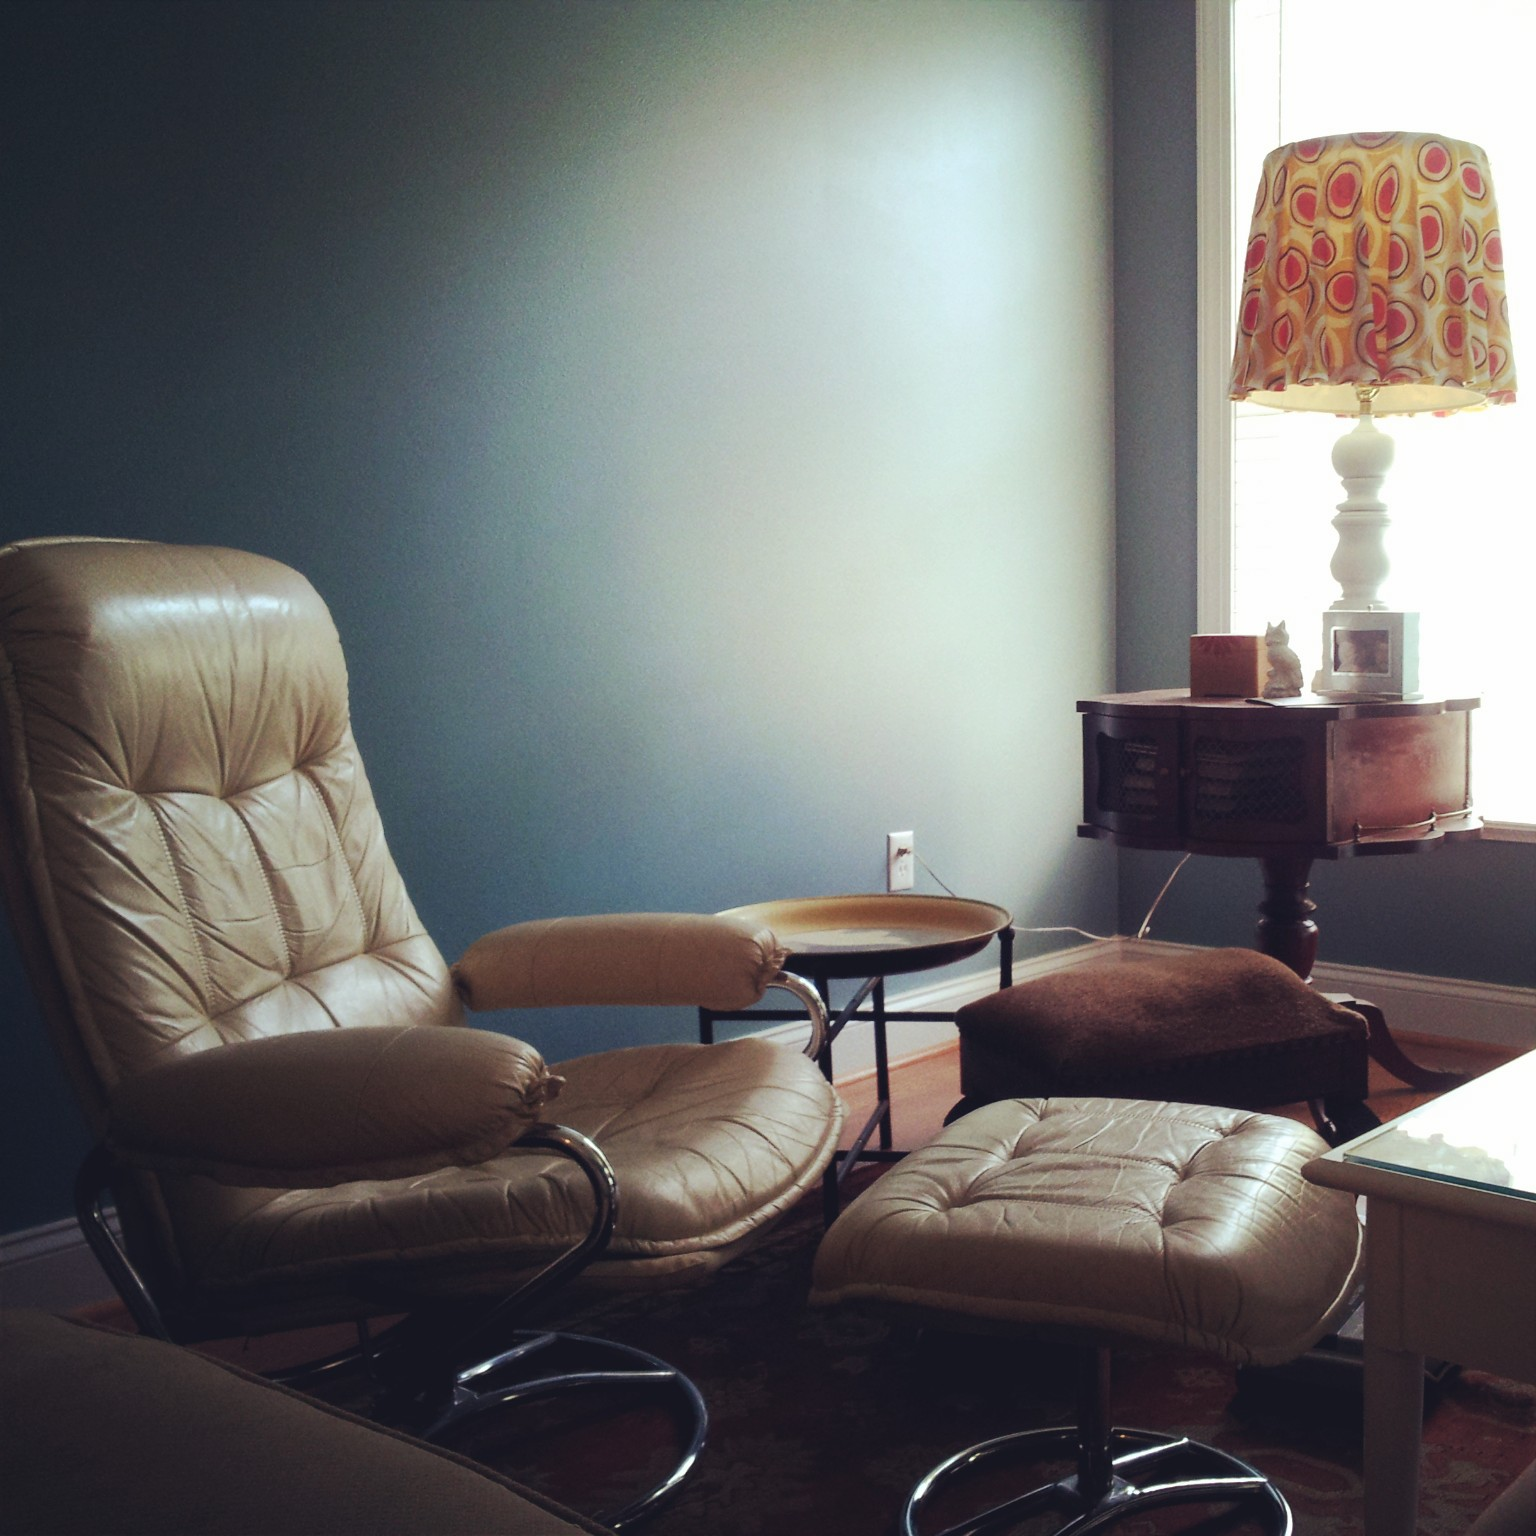 My Eames Era Lounge Chair and The Couch that Bleeds Bold